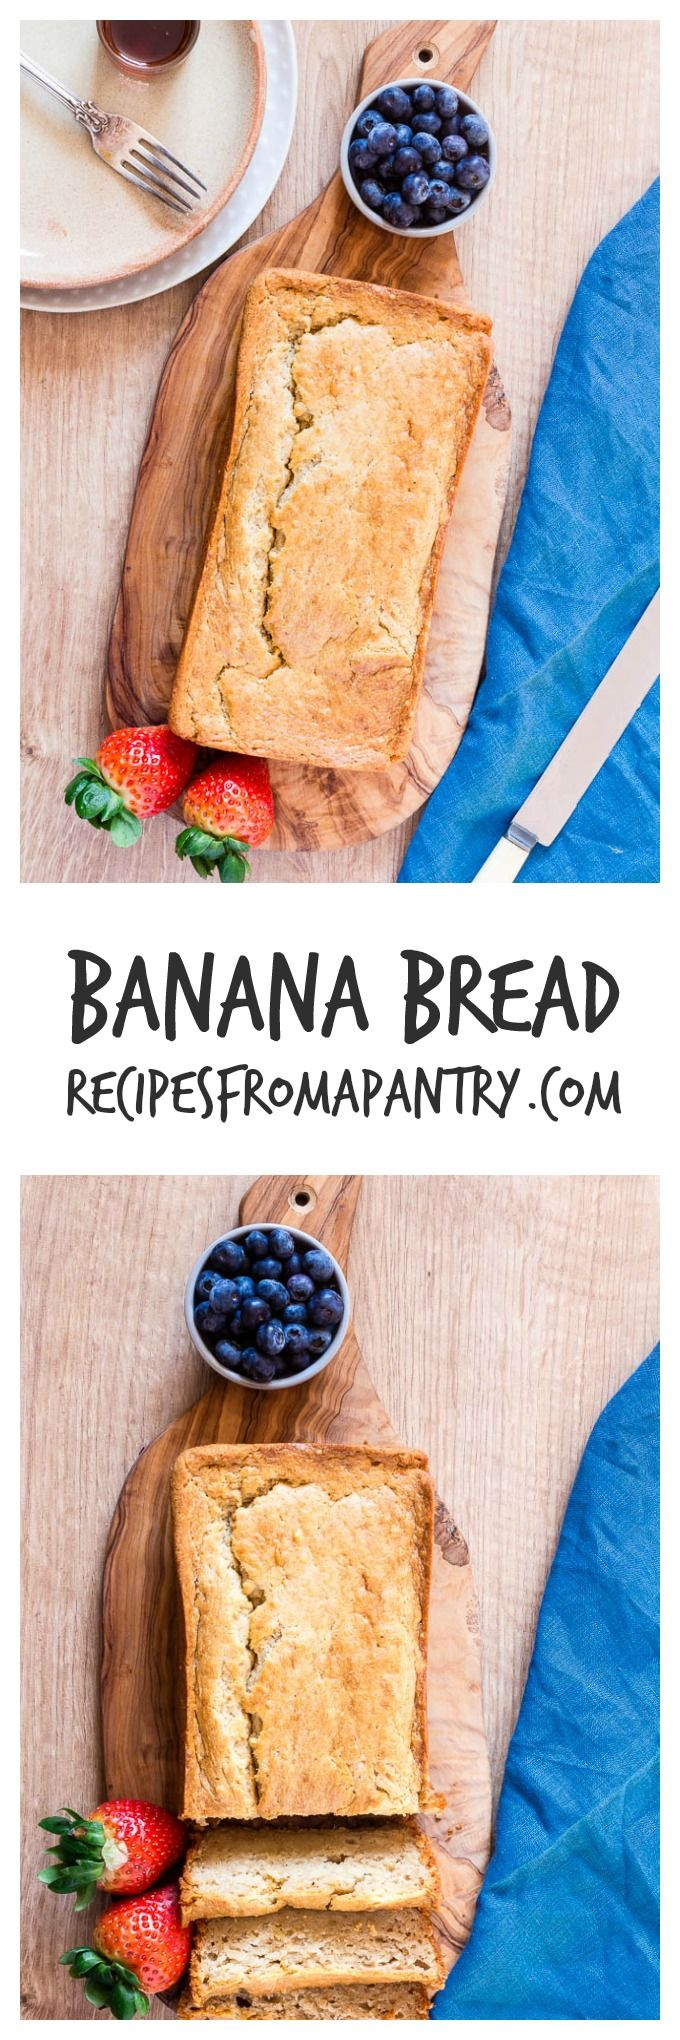 A quick and simple banana bread recipes. Something for the entire family.  | Recipes From A Pantry